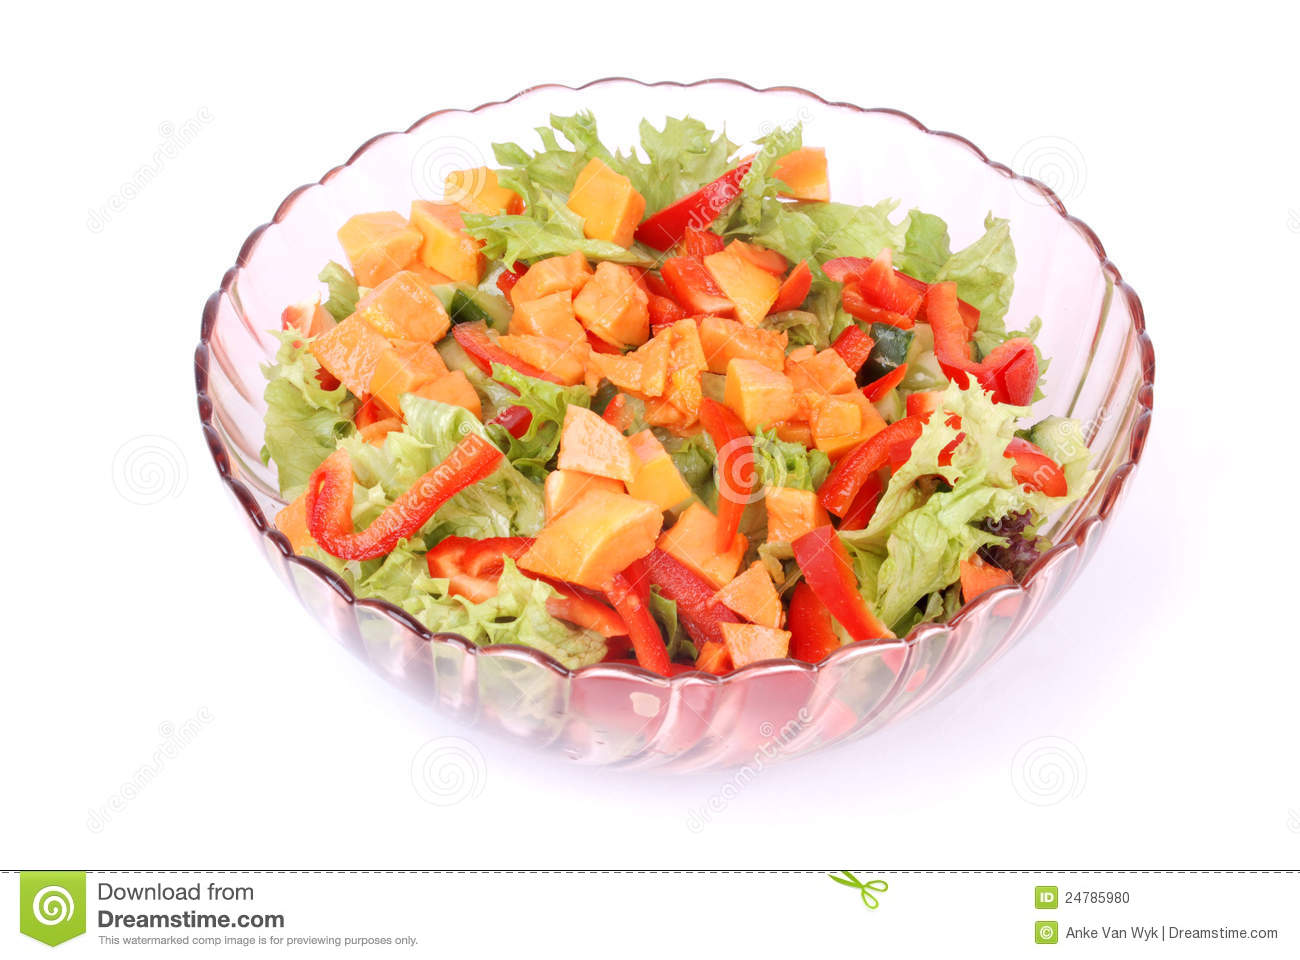 is a potato a fruit or vegetable fruit salad recipes healthy